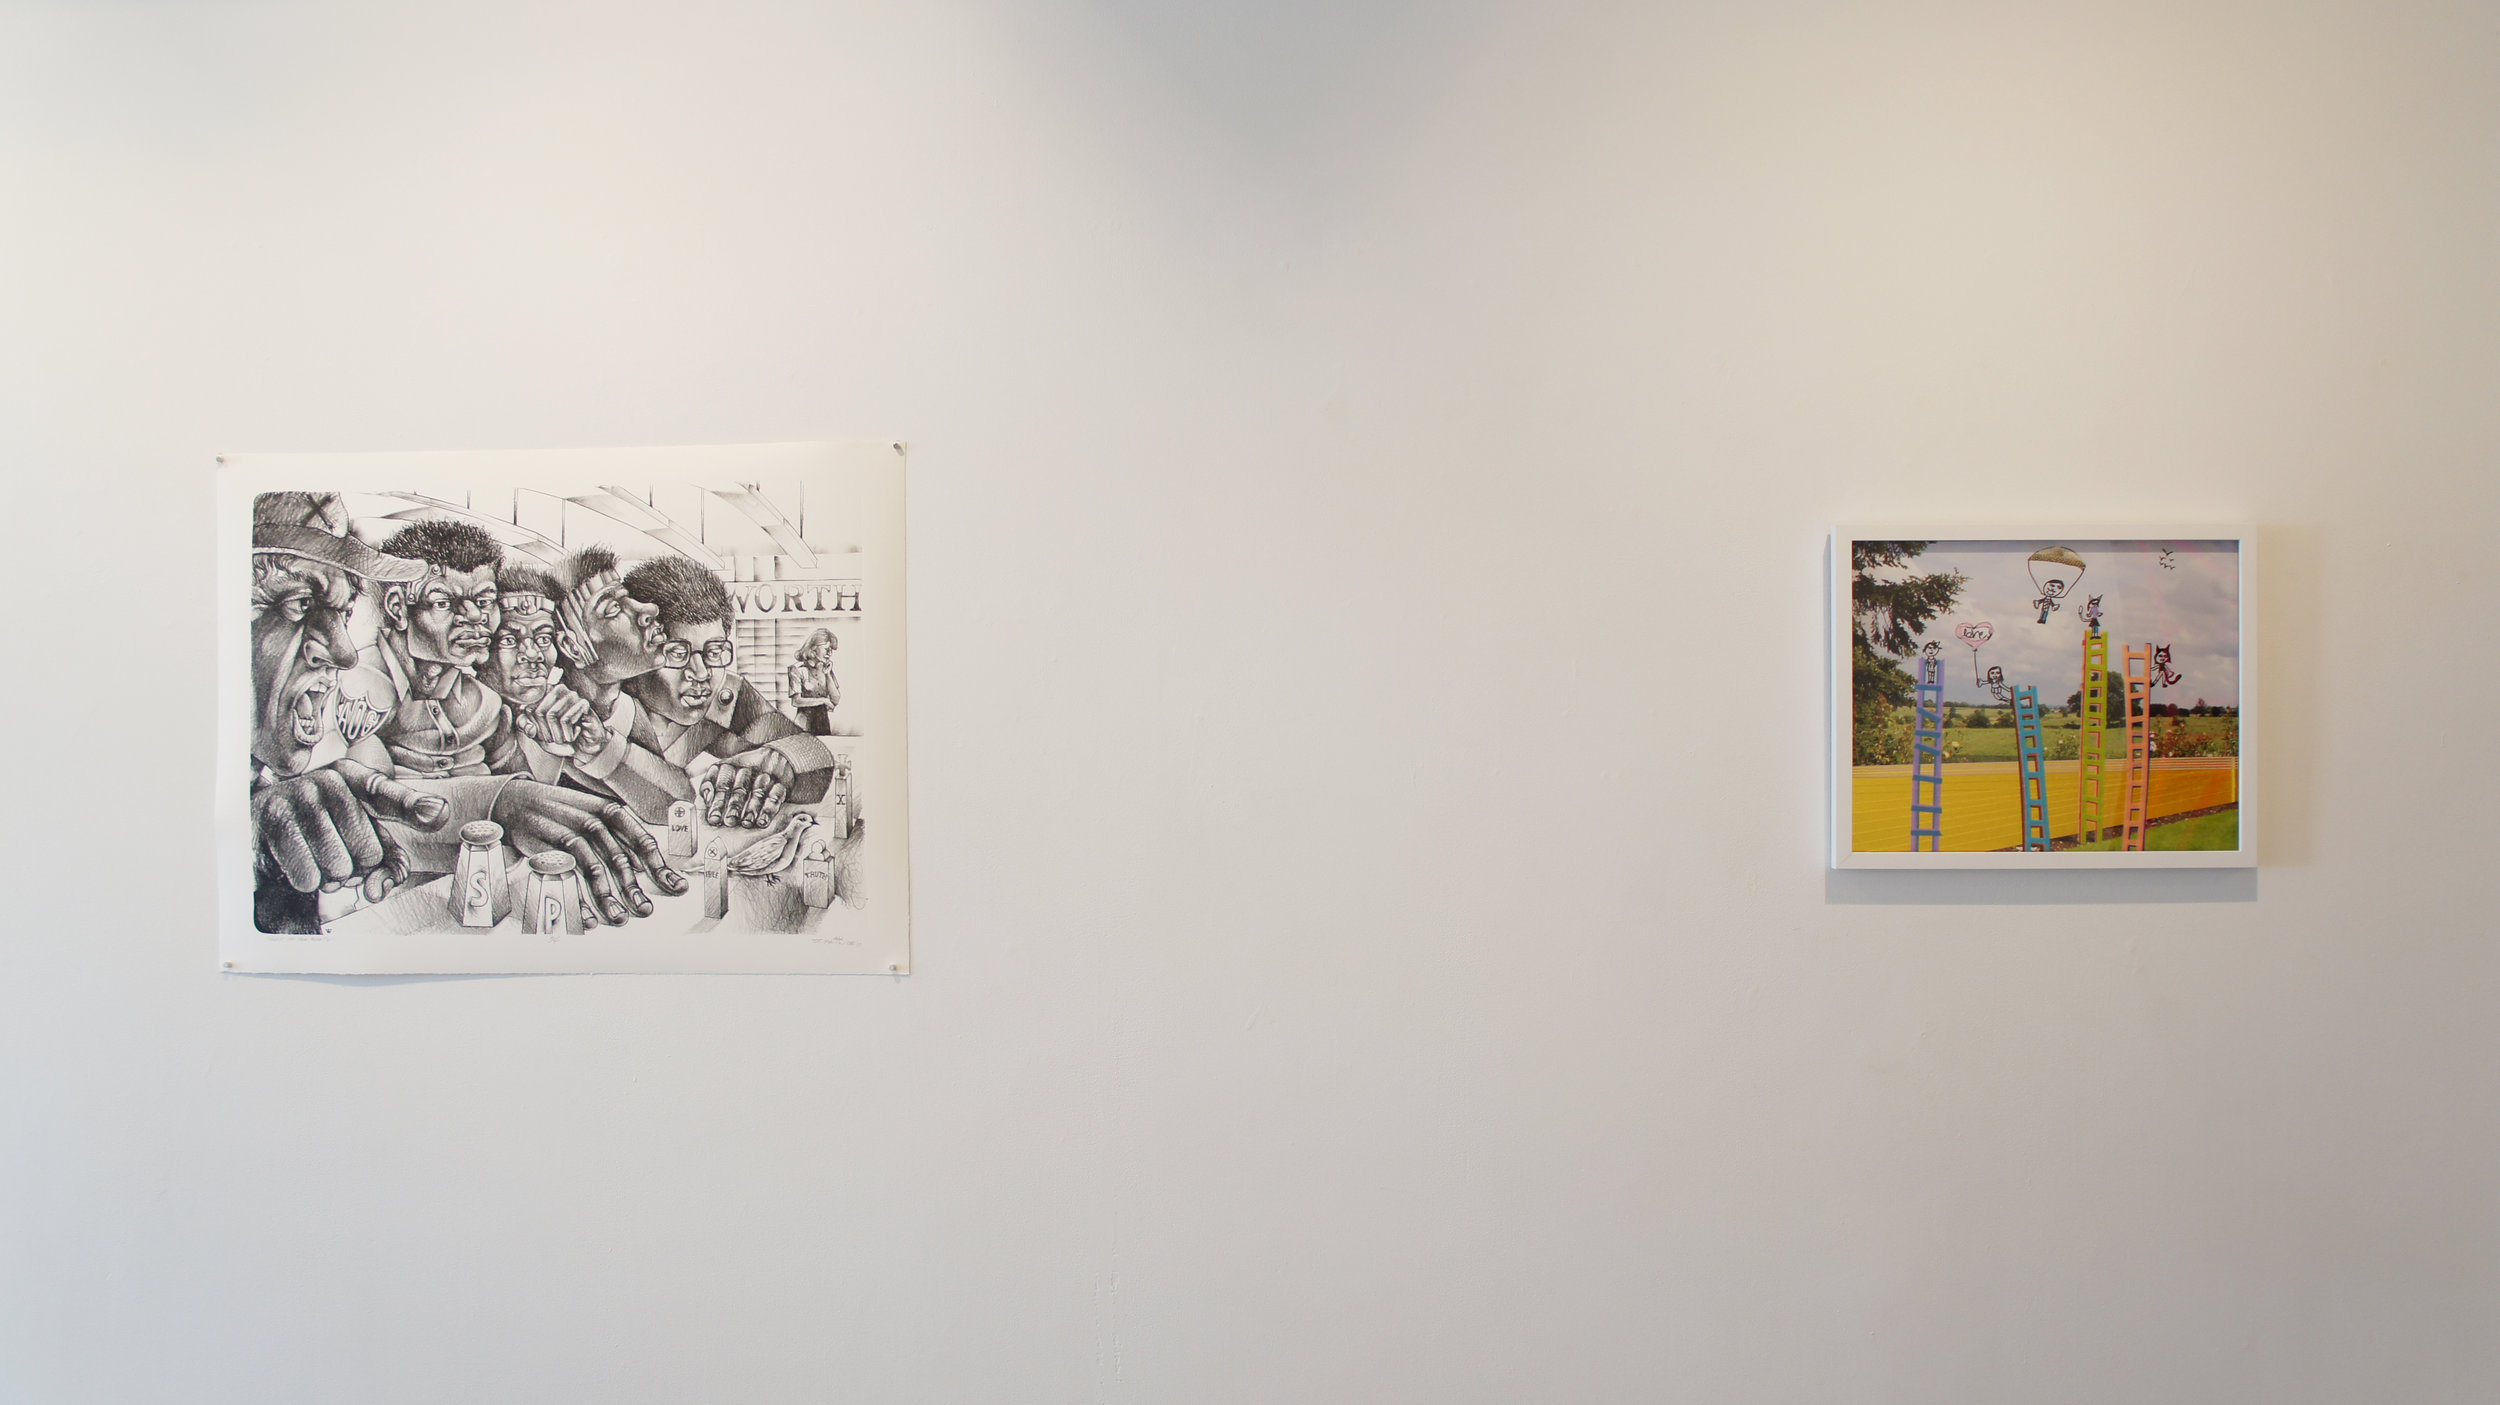 Installation view of Steve Prince's Salt of the Earth (2017,) (L) and Michelle Westmark Wingard, Allie Wingard, and Naomi Wingard's We Will Build Ladders 6 (2016,) (R)